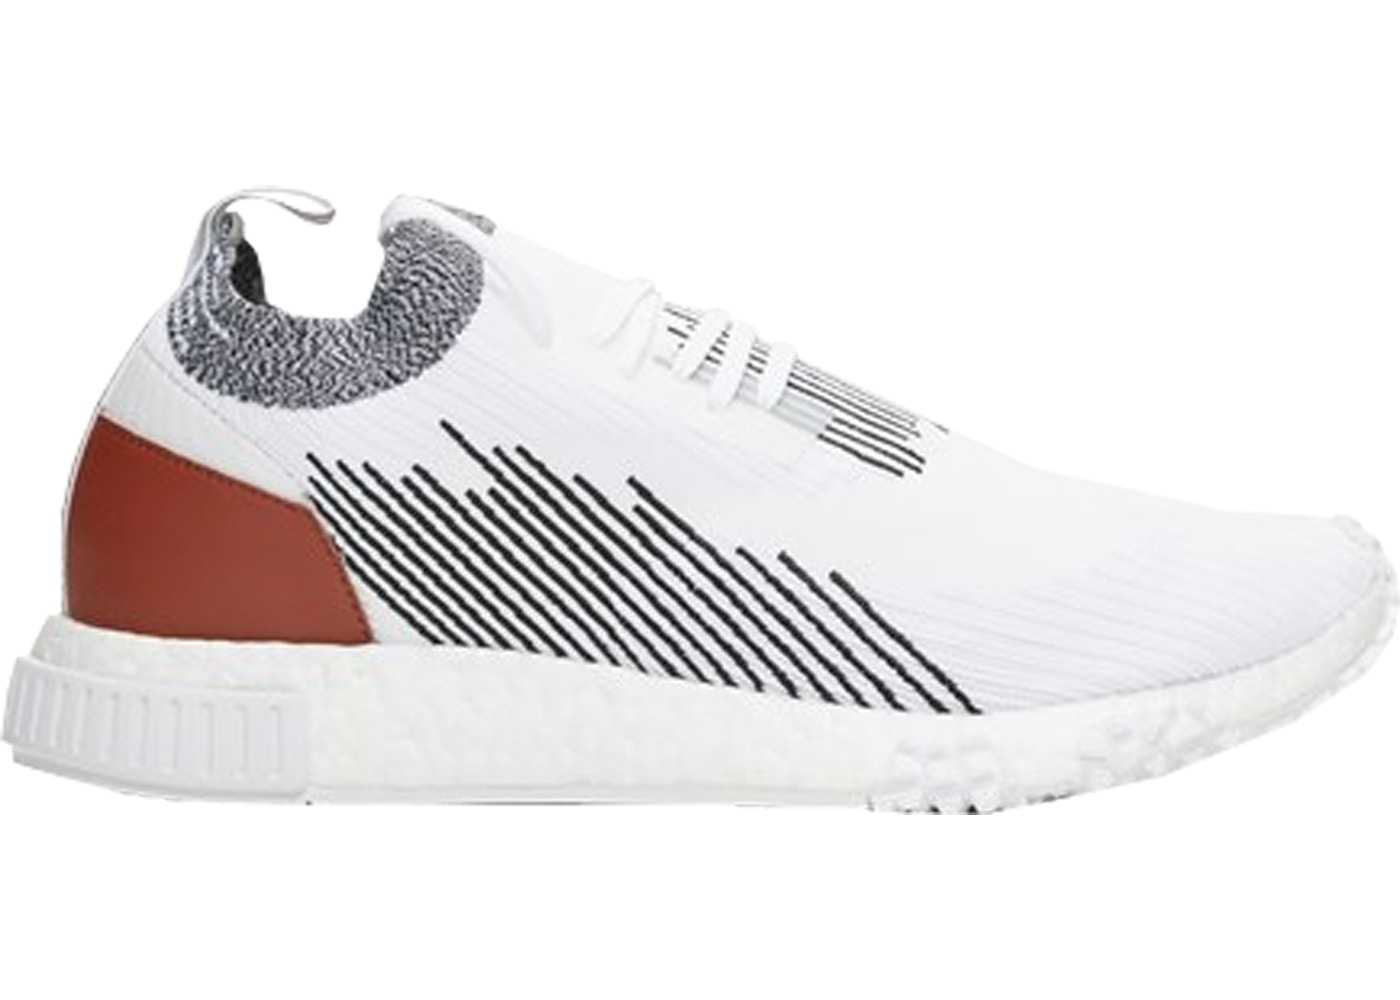 81102fc30395 adidas NMD Racer Whitaker Group - AC8233